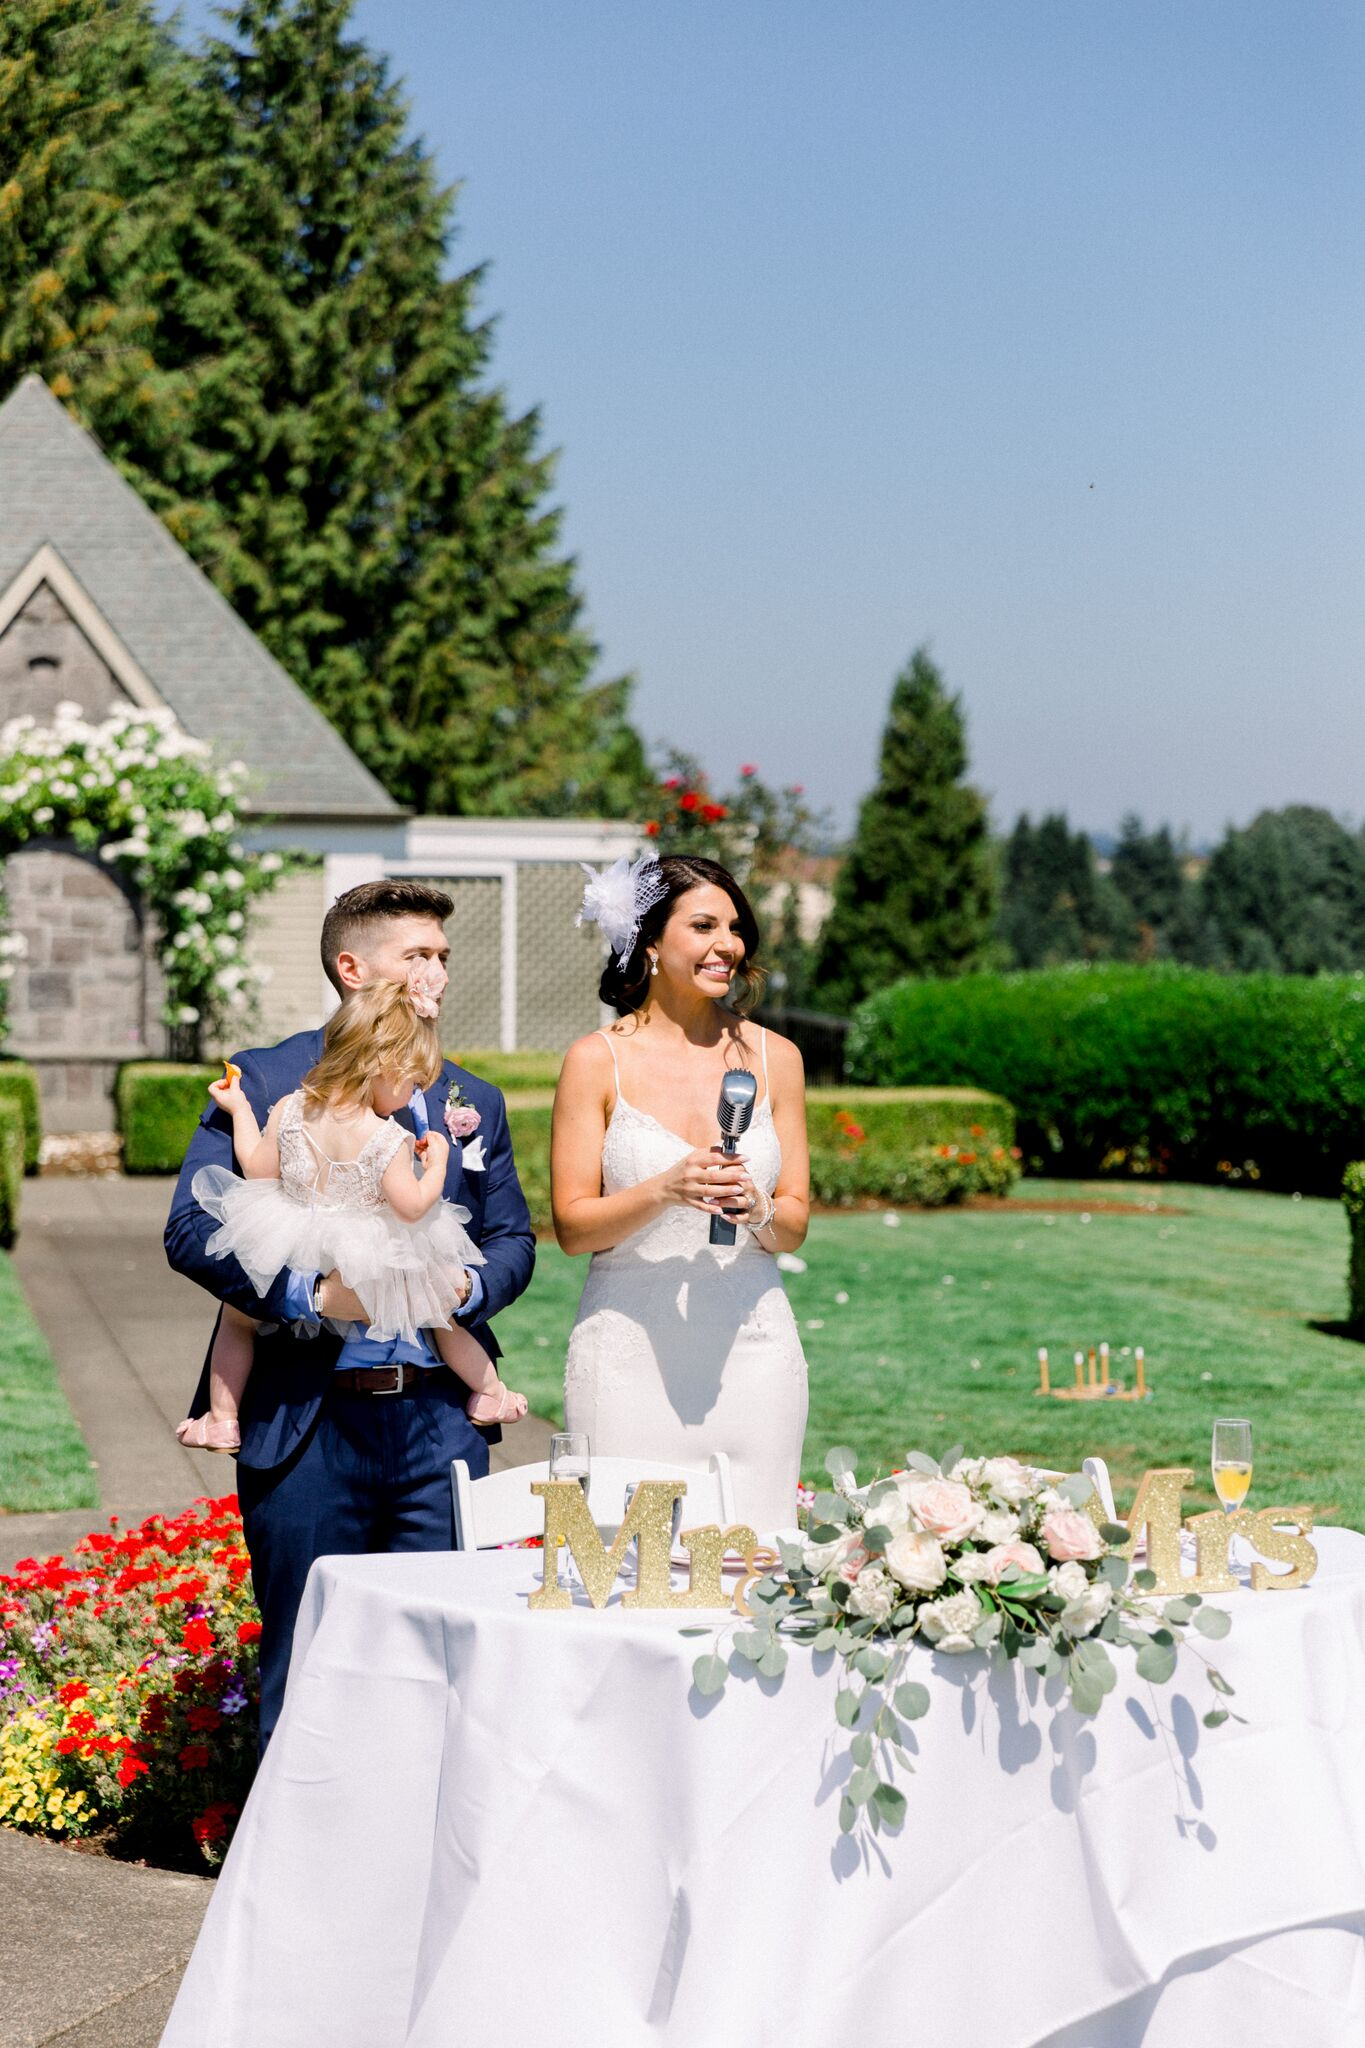 Bridalbliss.com | Portland Wedding | Oregon Event Planning and Design | Deyla Huss Photography